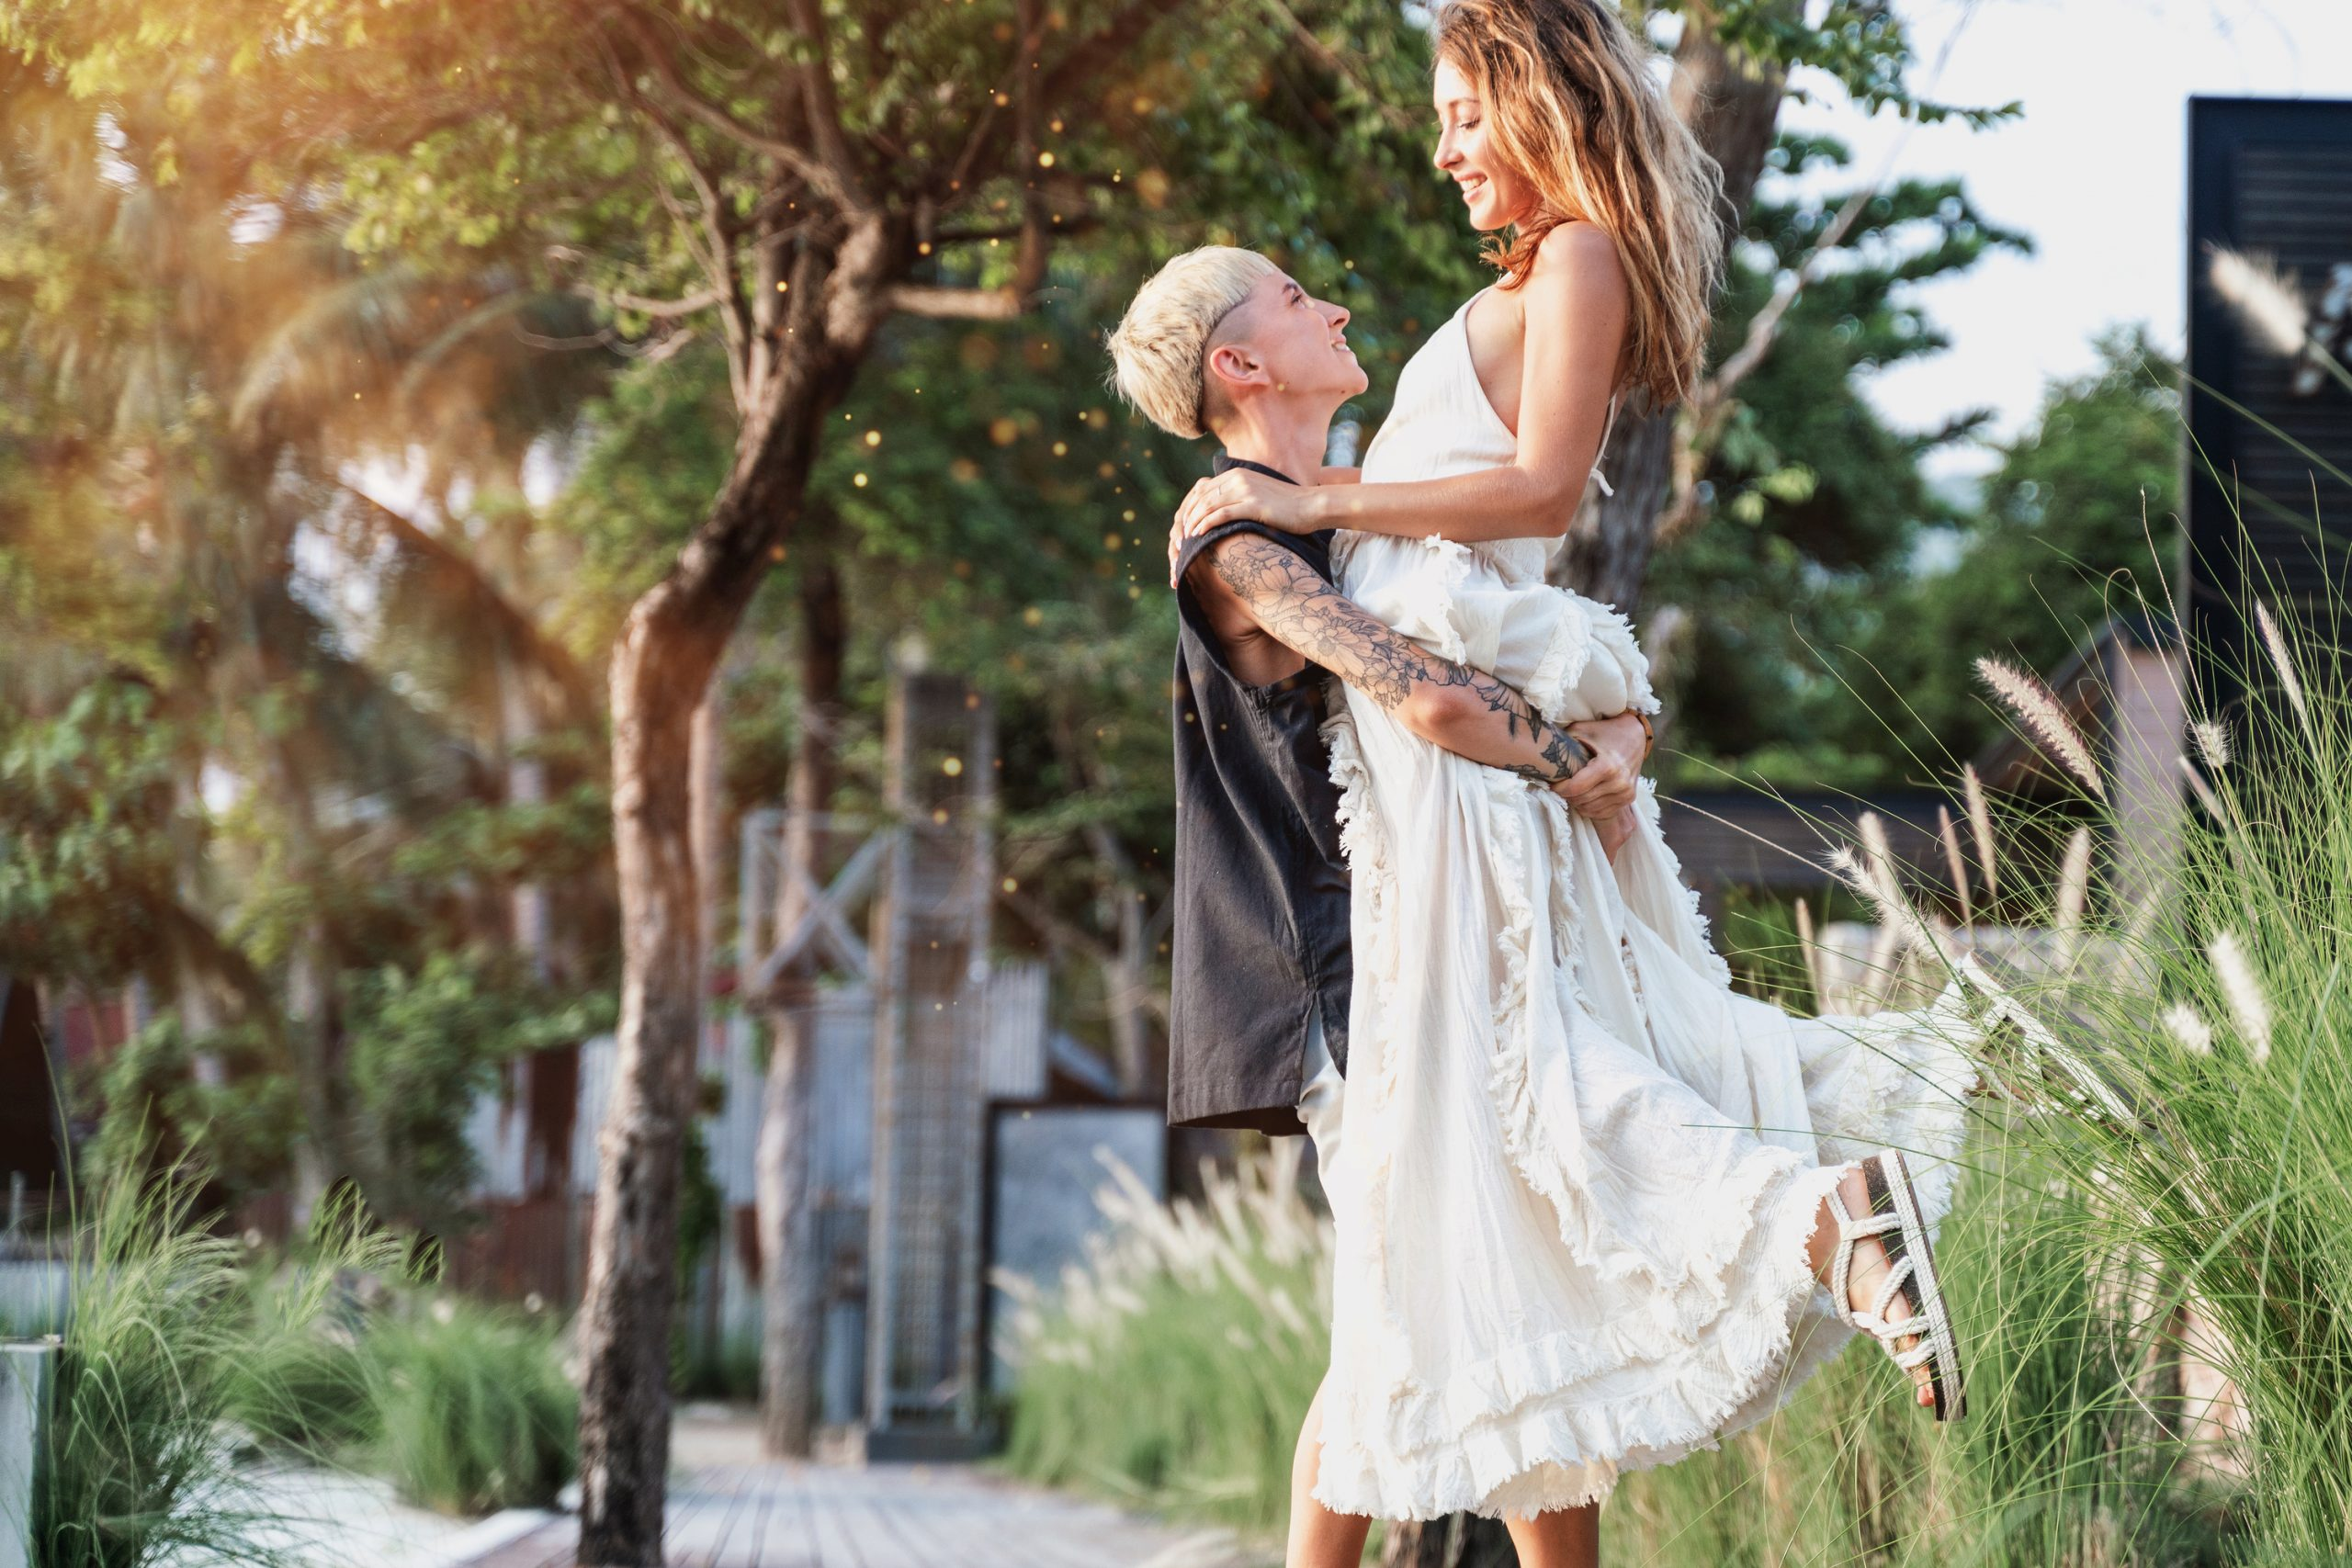 If you are a lesbian getting married, it can be tricky to pick an outfit to wear on your big day. But, these lesbian wedding outfits are perfect for your big day! There is nothing wrong with embracing who you are and going casual.